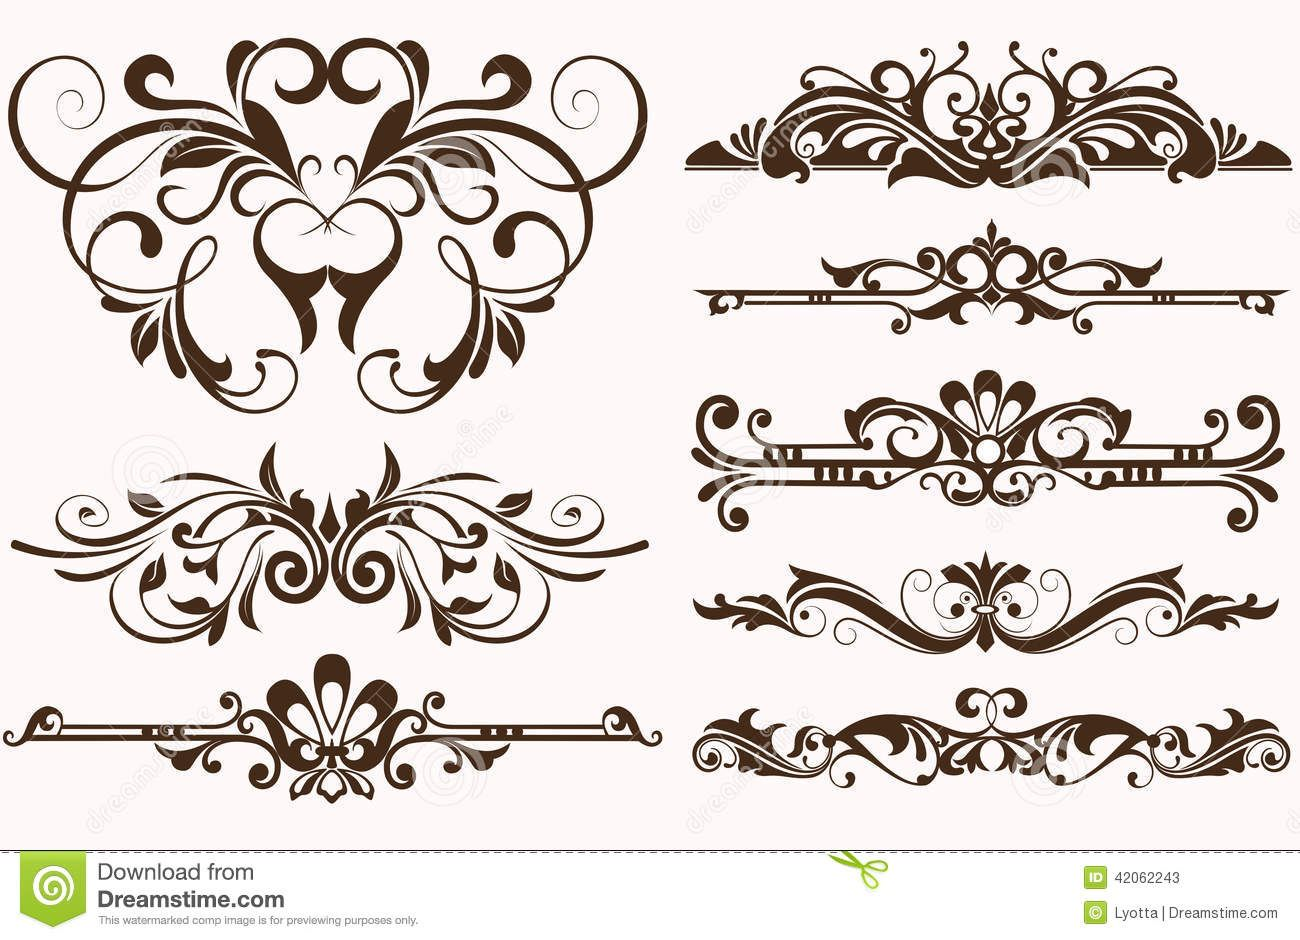 Art deco ornaments - Vintage Ornaments Borders Design Download From Over 41 Million High Quality Stock Photos Images